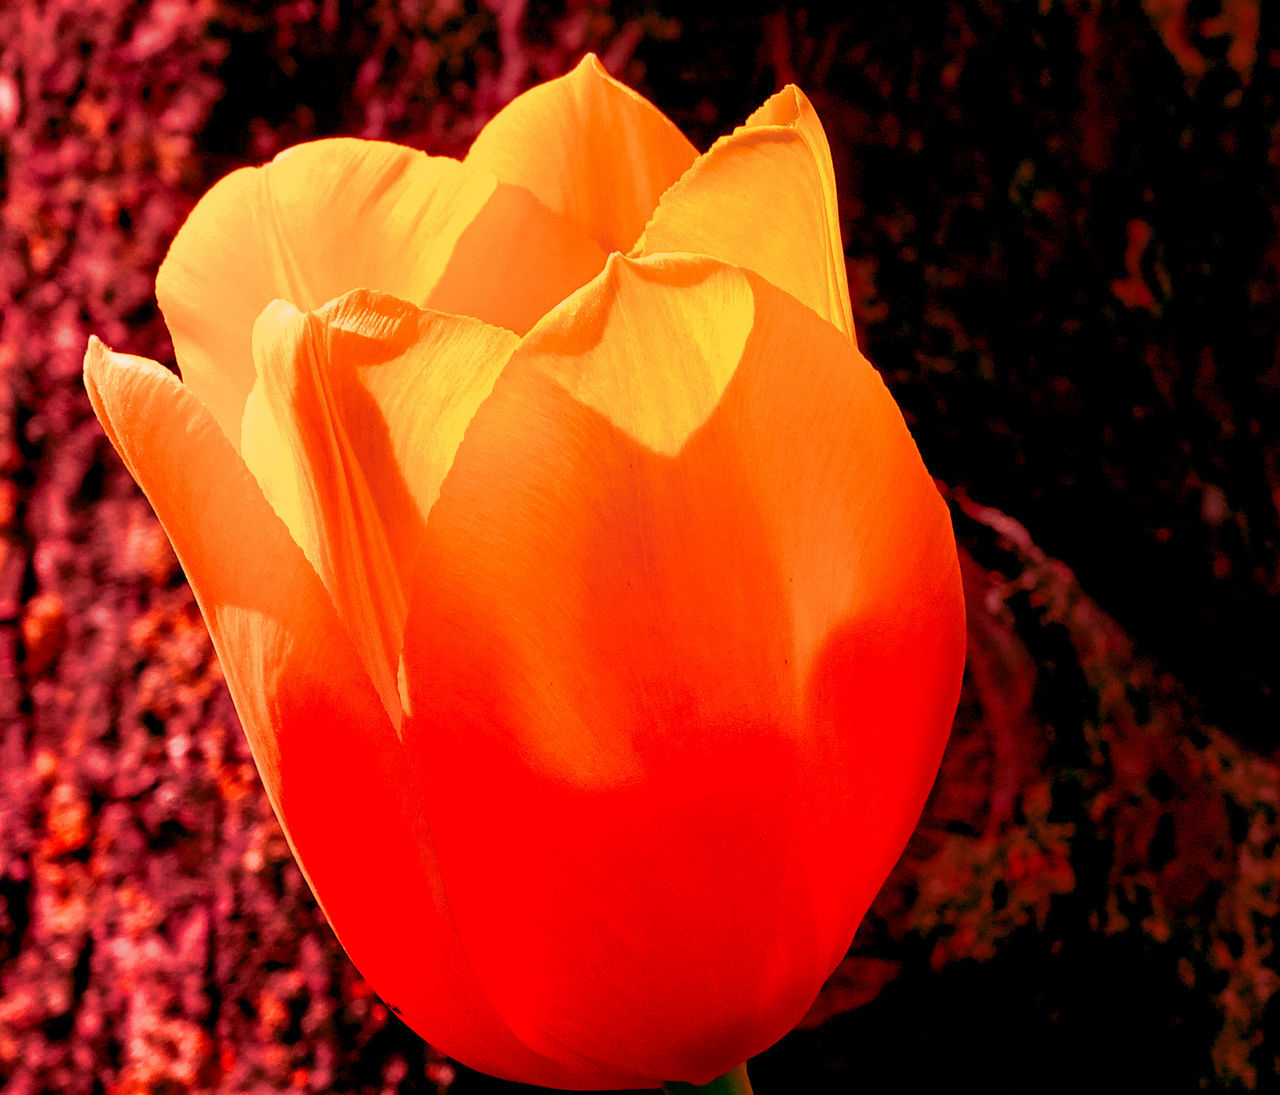 flower, petal, flower head, orange color, fragility, nature, beauty in nature, freshness, close-up, blooming, outdoors, growth, rose - flower, focus on foreground, no people, plant, day